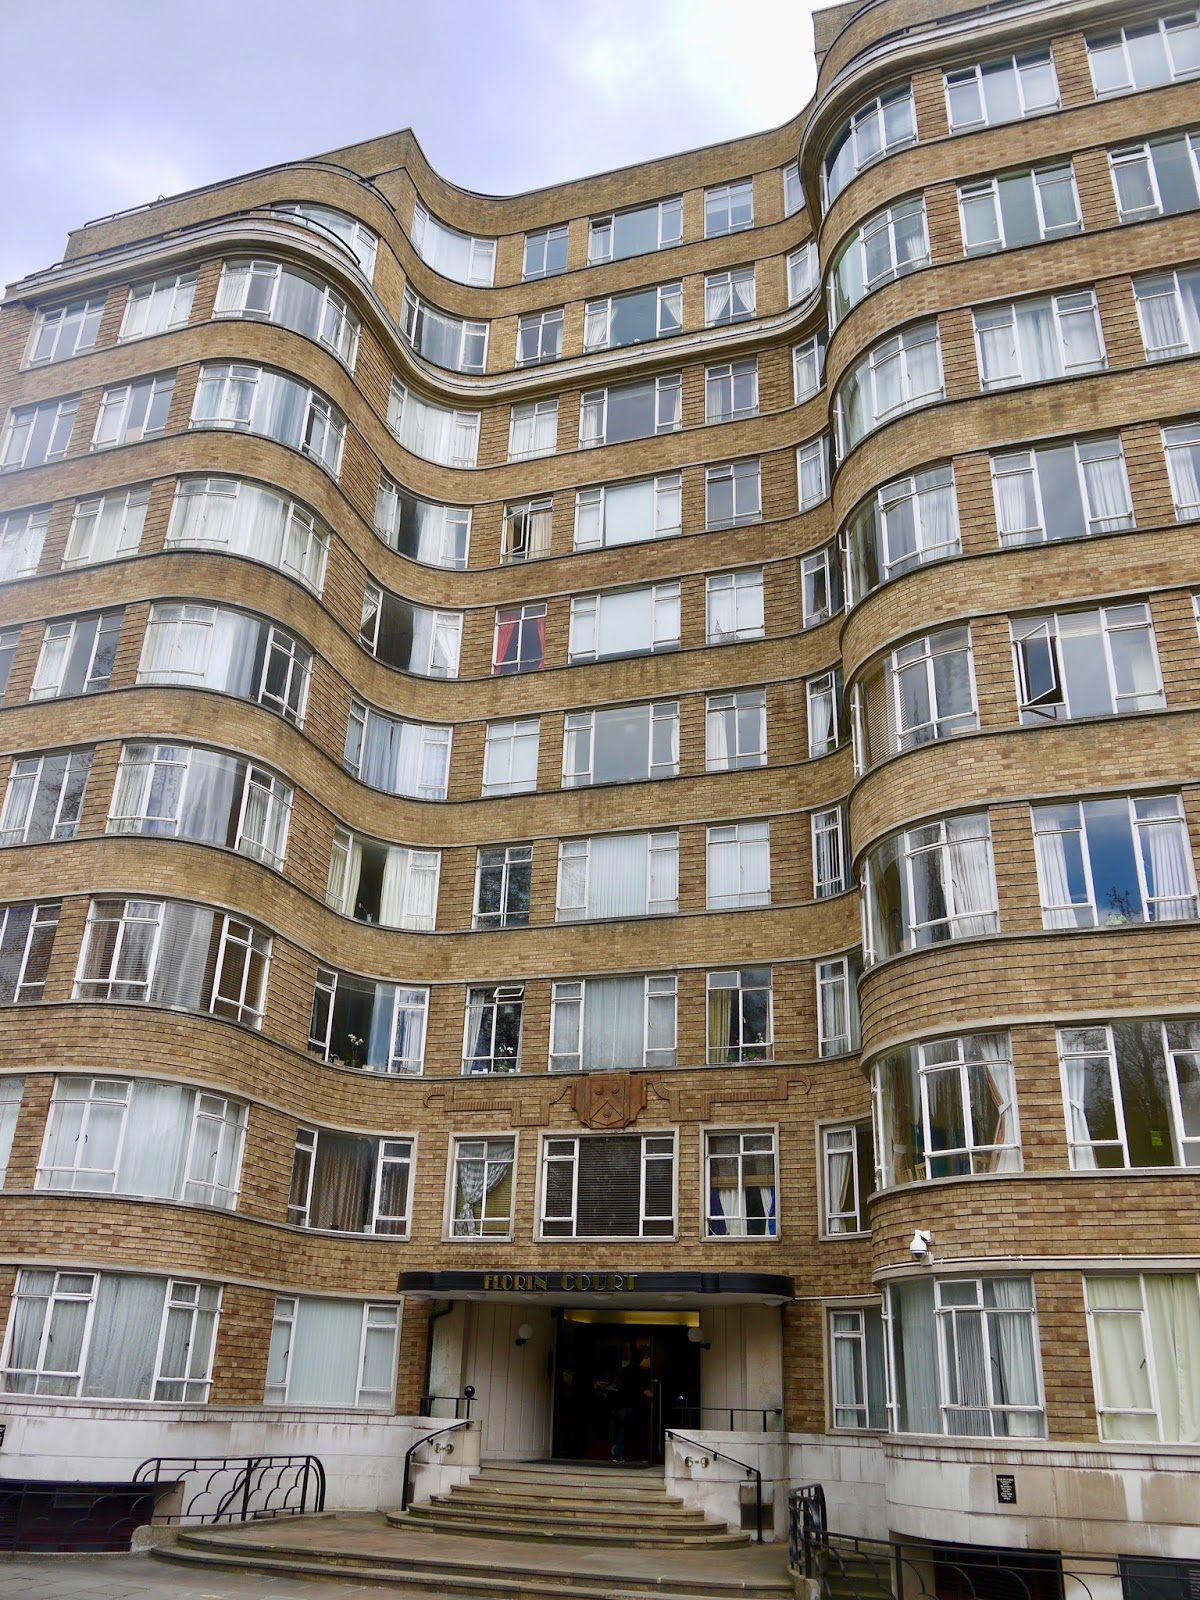 adrian yekkes london art deco and modernism five favourites